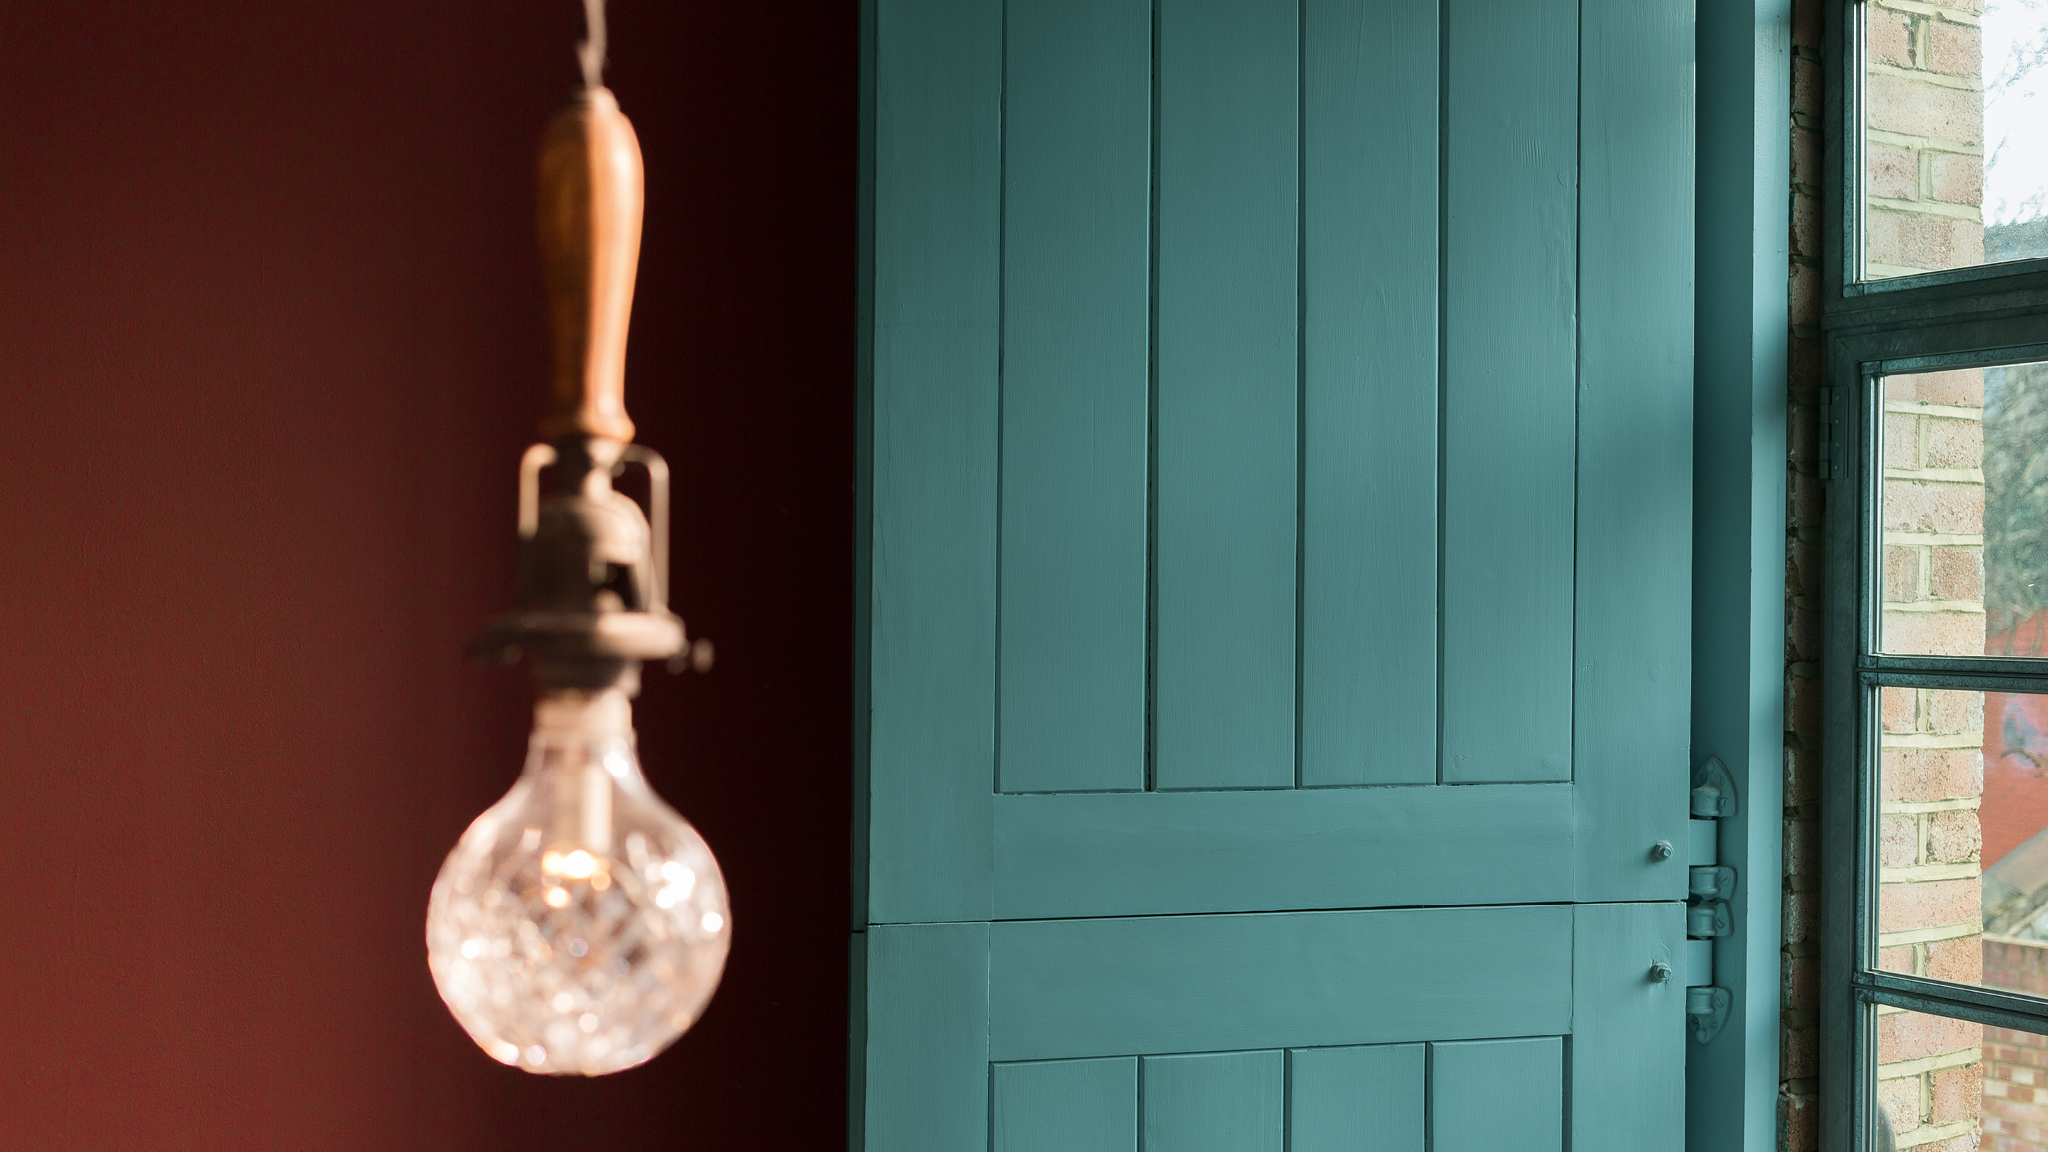 Containing hints of blue and green, teal is an enormously restful colour, and one that can be used liberally throughout your new home.